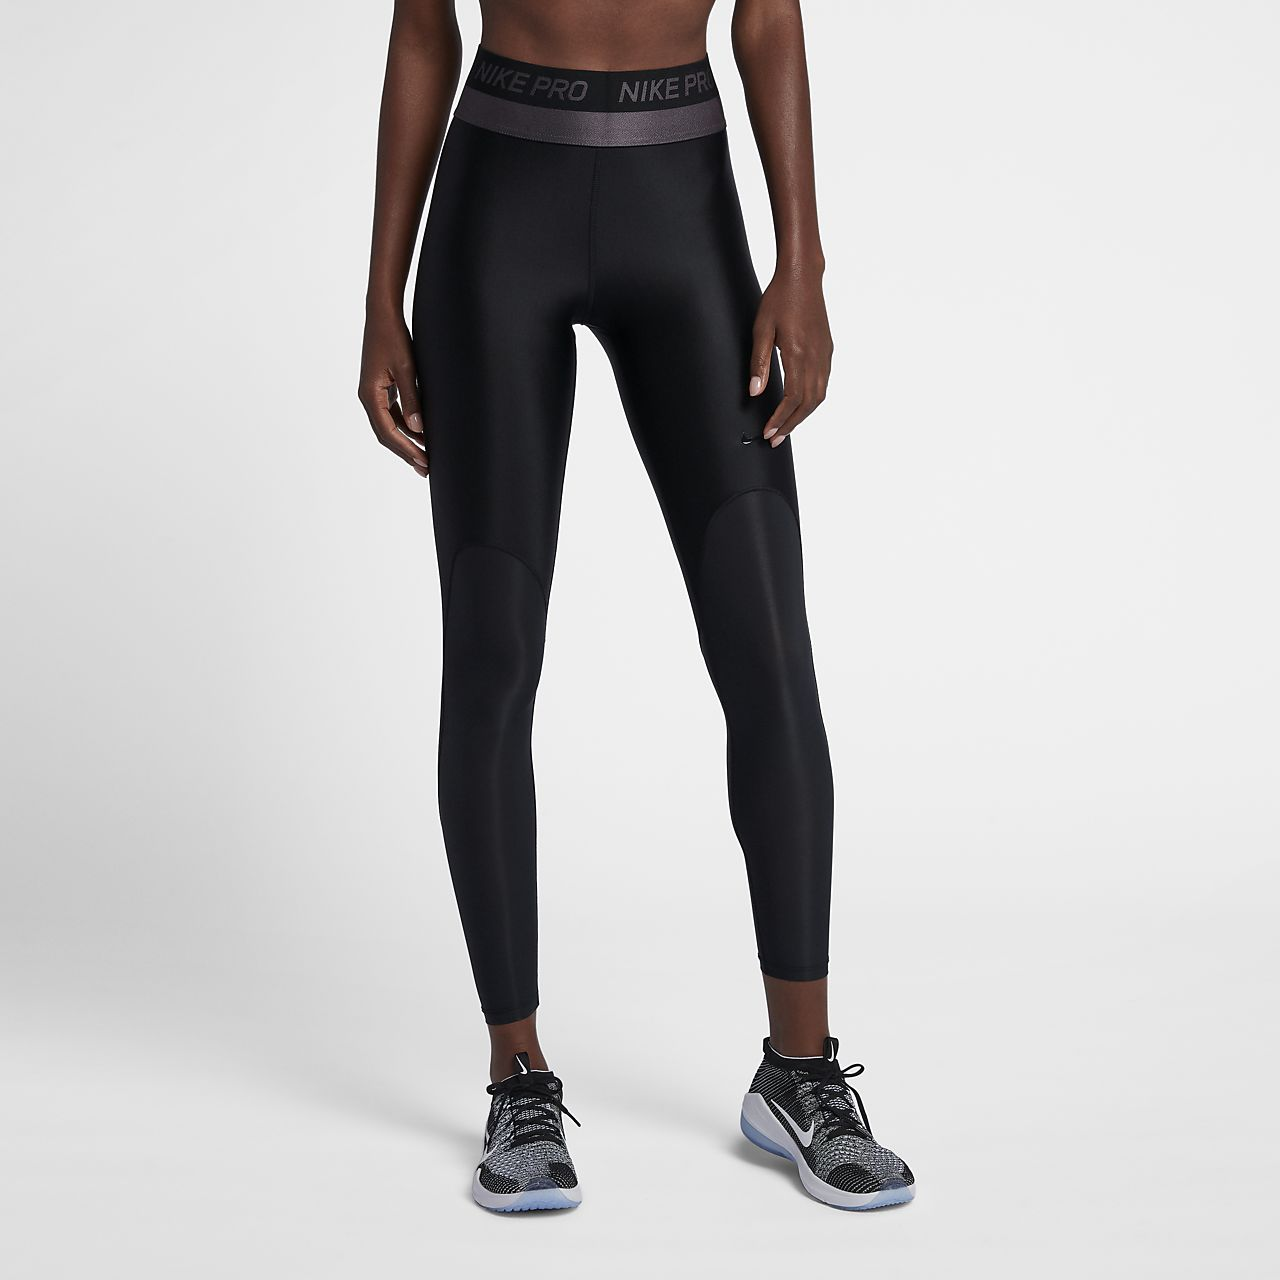 9bad4c24754b54 Nike Pro HyperCool Women s Mid-Rise Training Tights. Nike.com AT